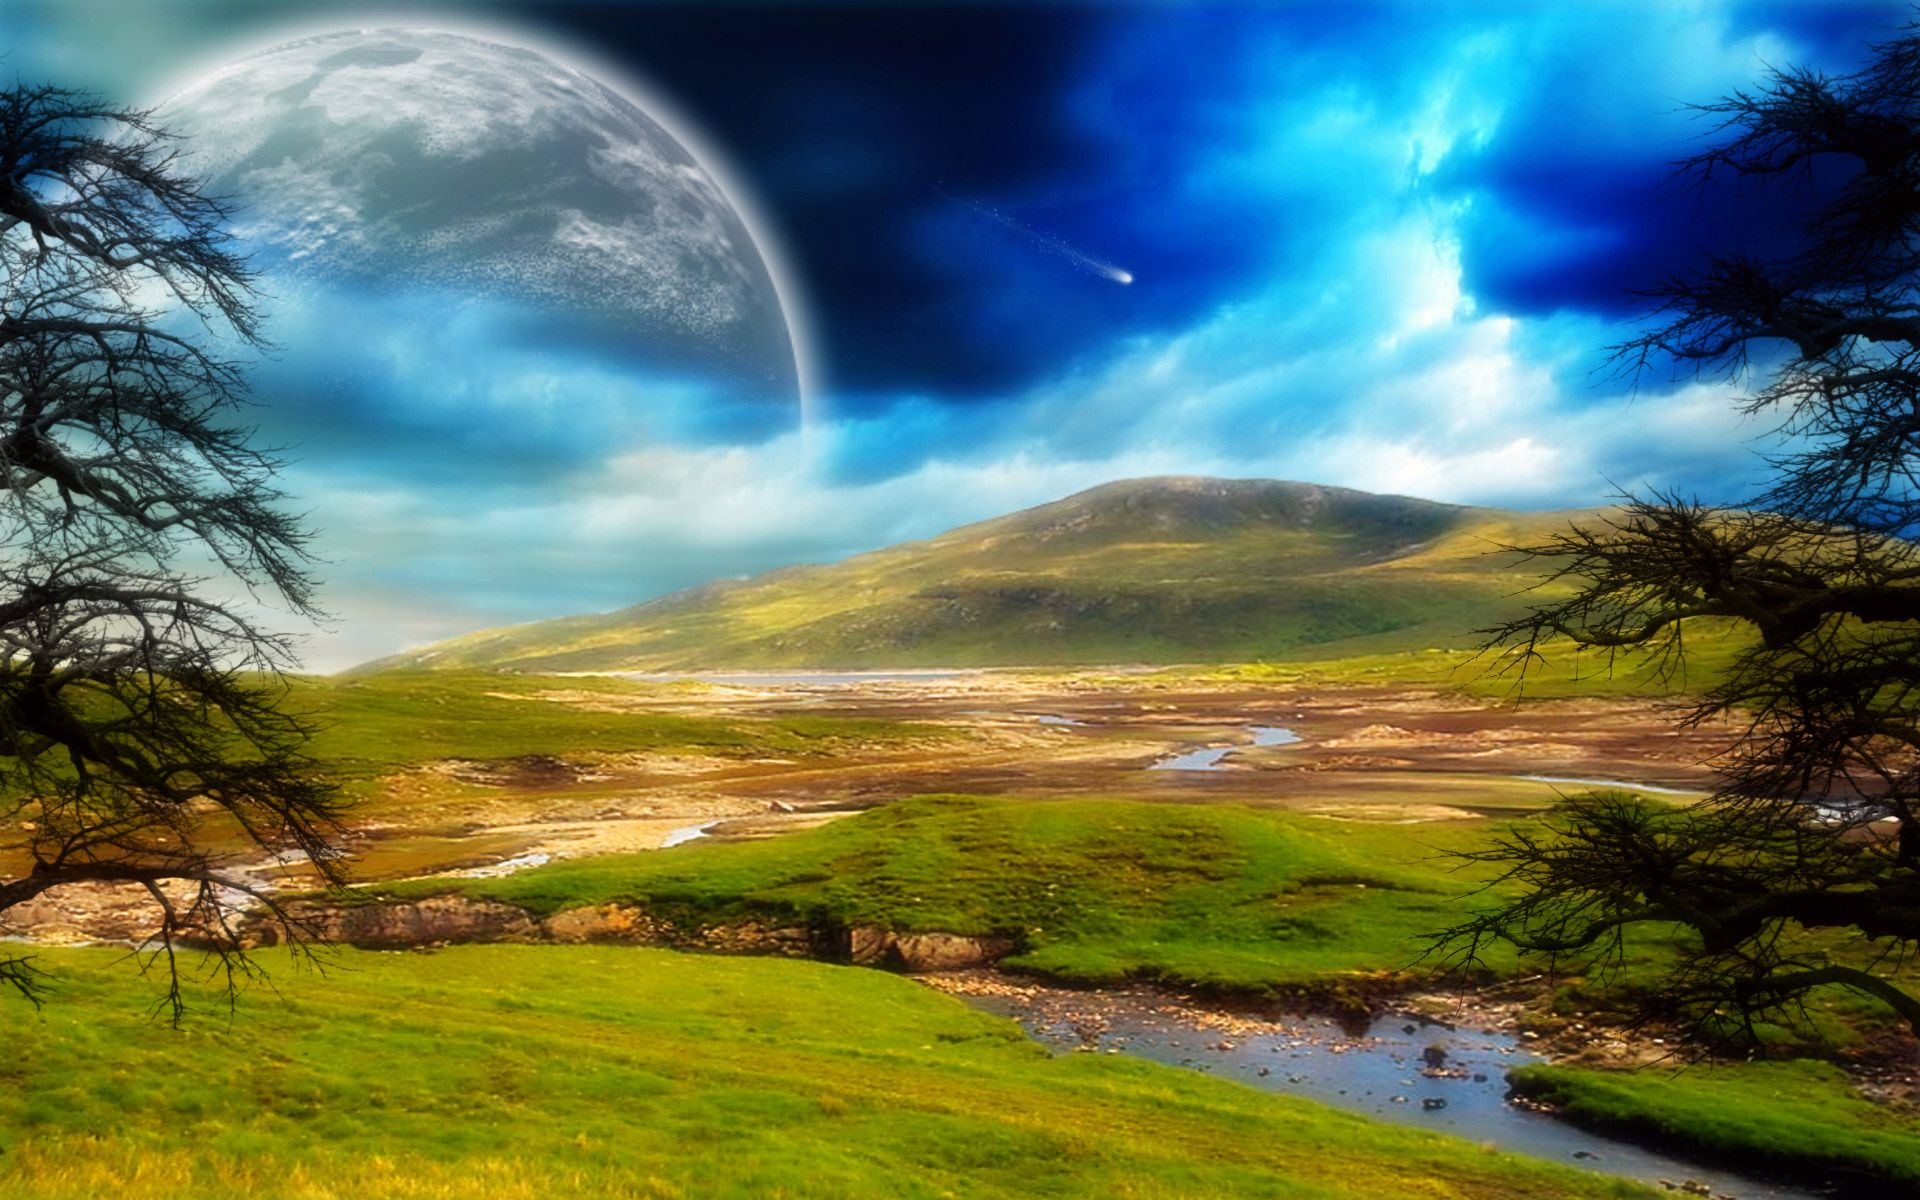 Nature Hd Wallpapers Big Size New Nature Wallpaper Nature Screensavers Nature Wallpaper